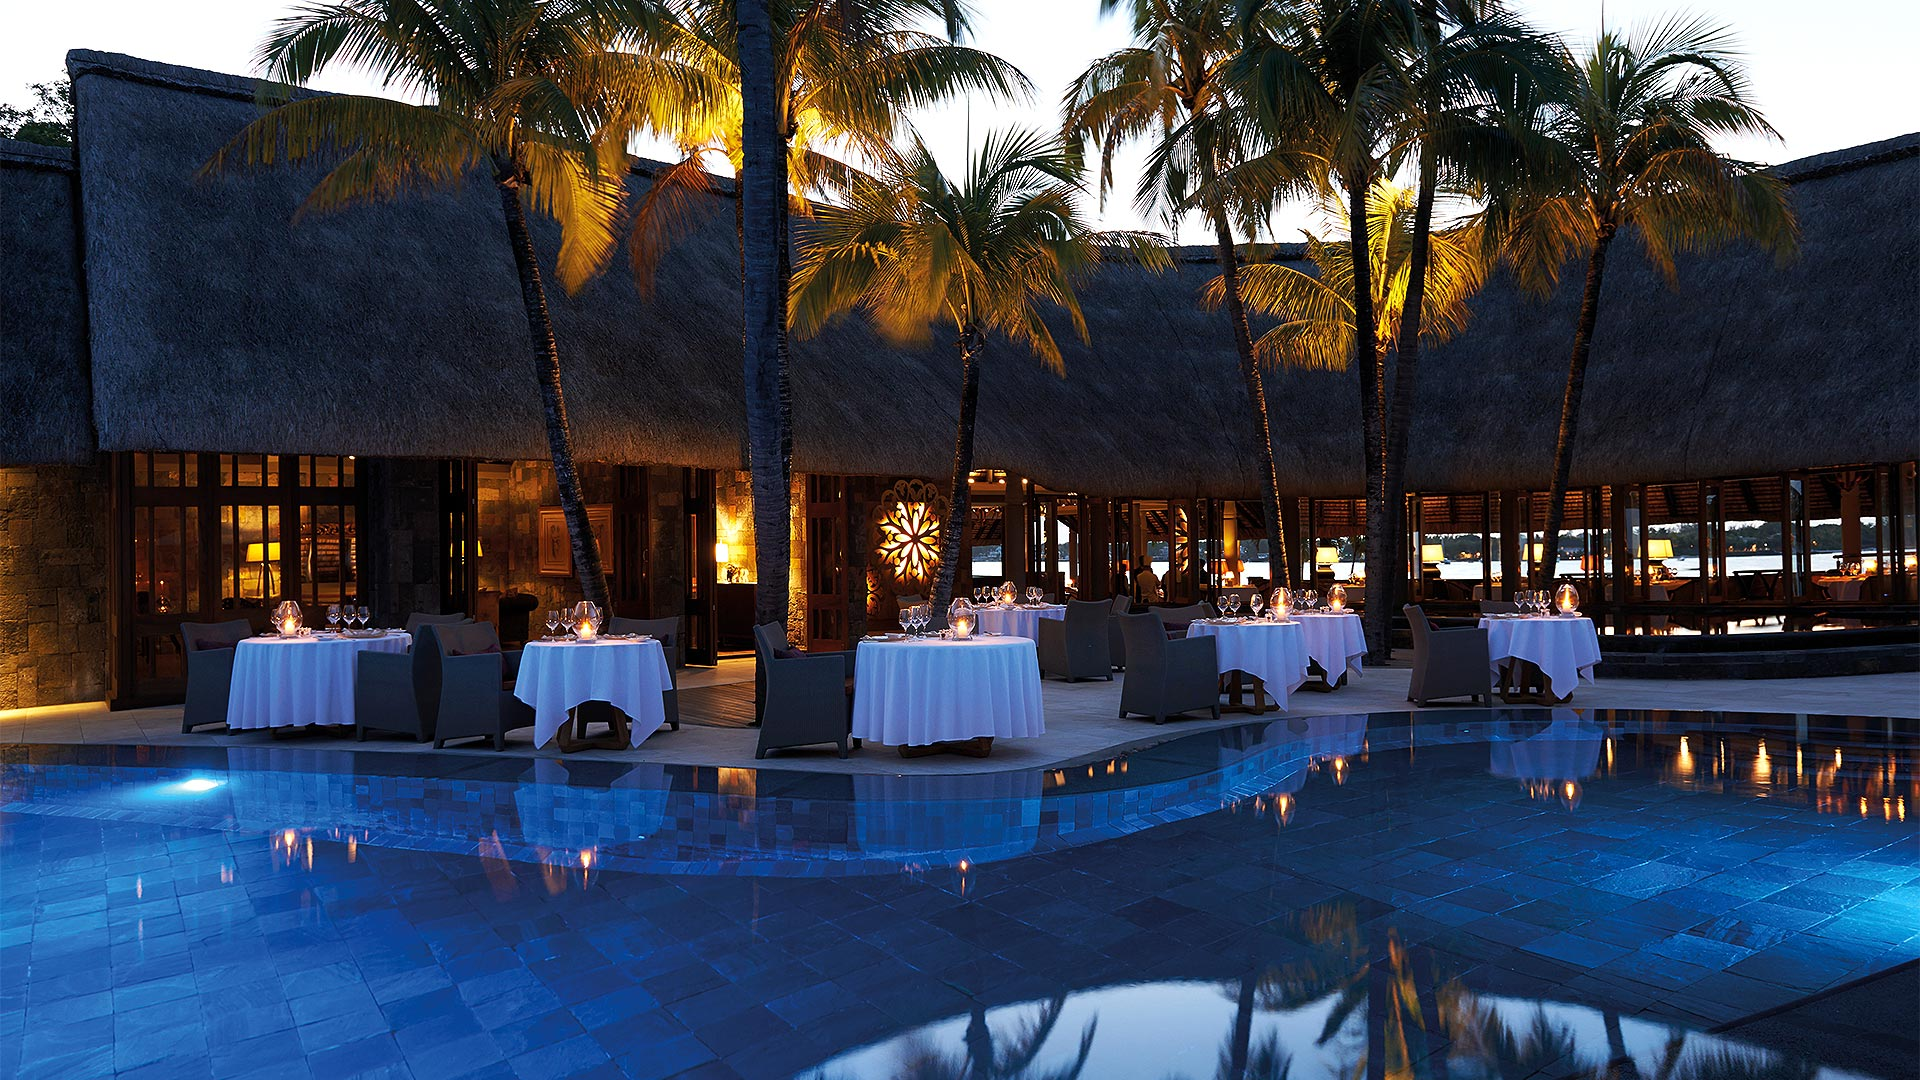 La Goelette - Restaurant - Dining - Pool - Royal Palm Mauritius